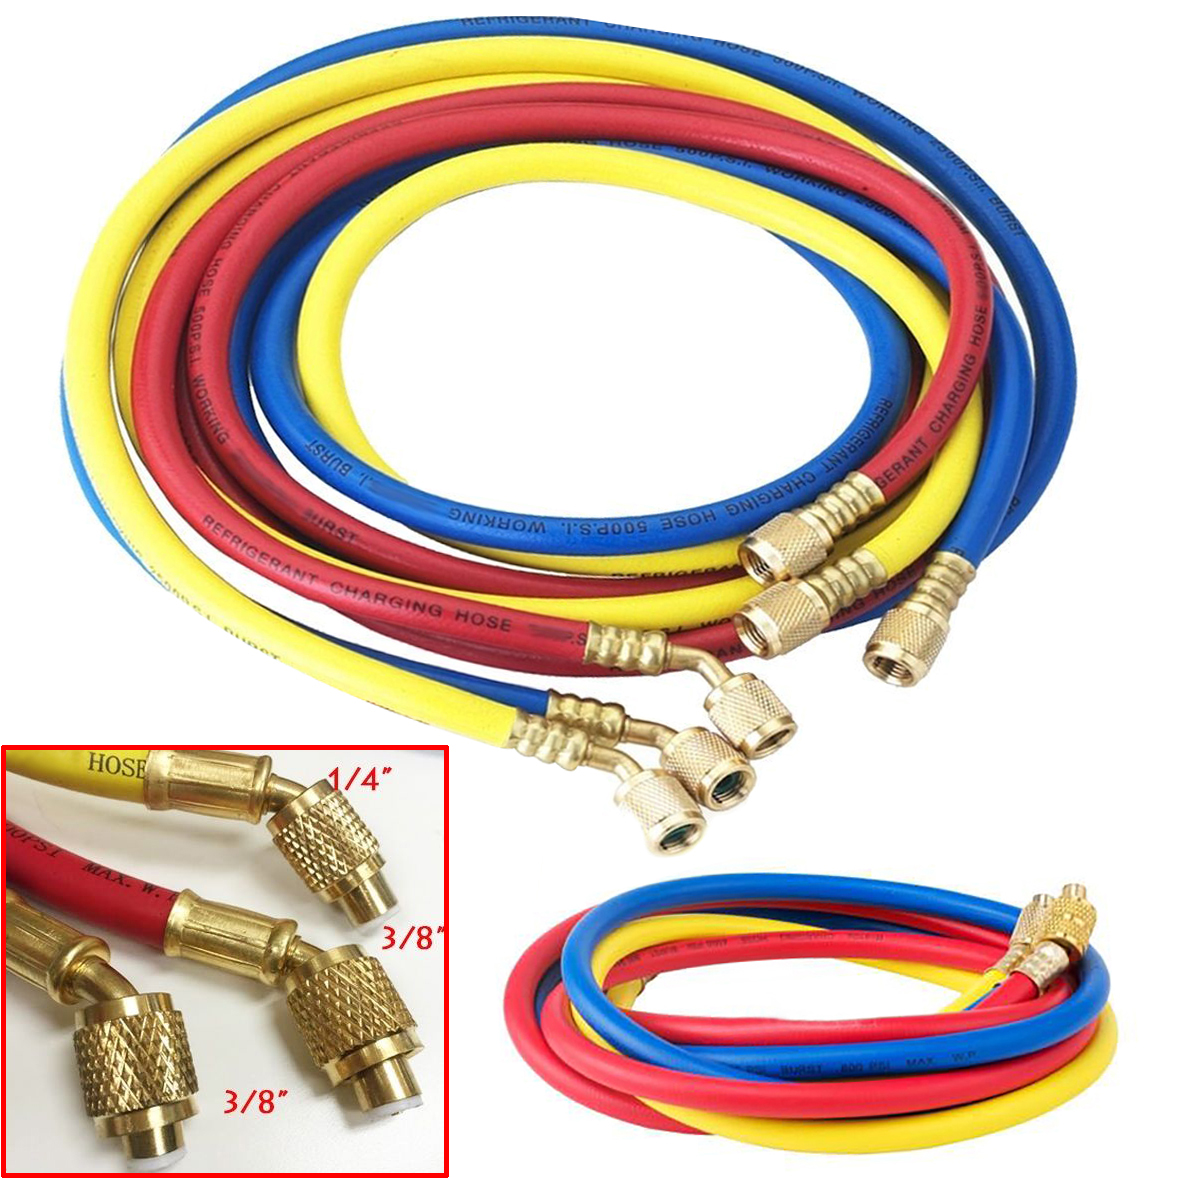 3pcs Durable Charging Hoses Tube 1.5m HVAC 1/4 3/8 SAE 800PSI For Car-styling Air Conditioning Refrigerant R410a R134a Mayitr air conditioning pressure indicator with charging hoses